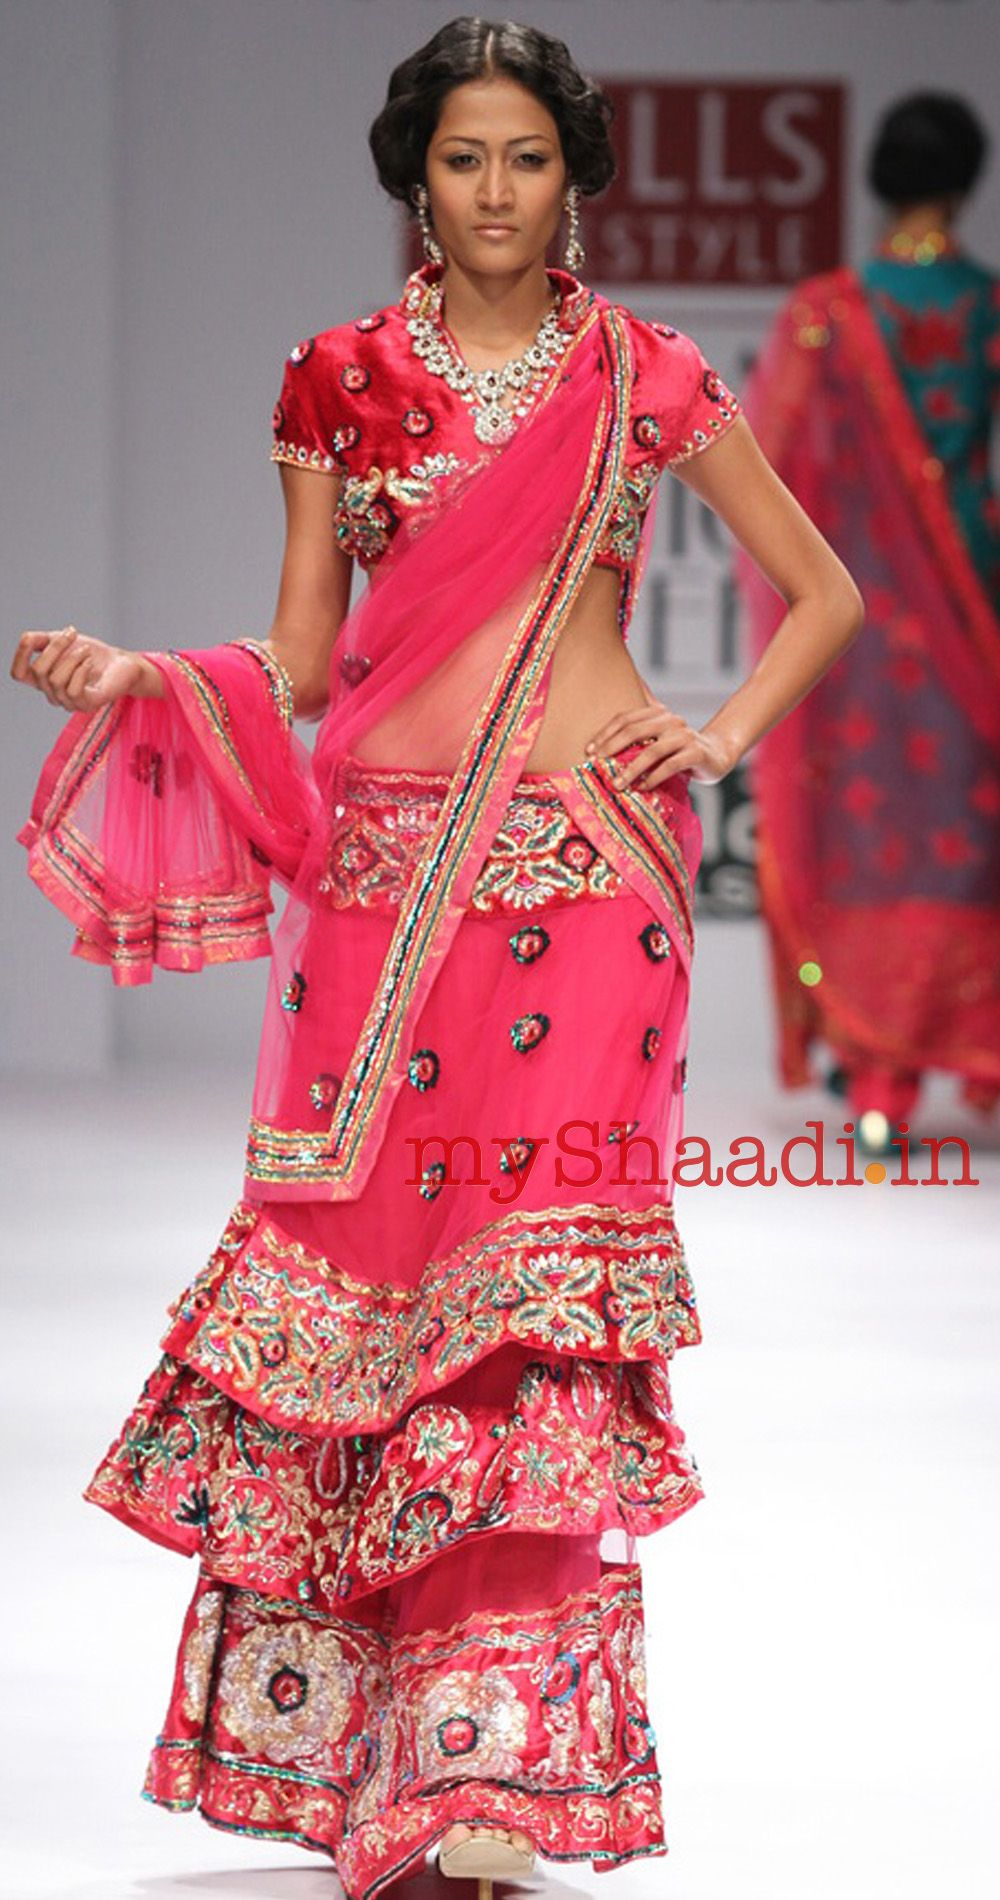 myShaadi.in > Indian Bridal Wear by Abdul Halder | indian dress ...